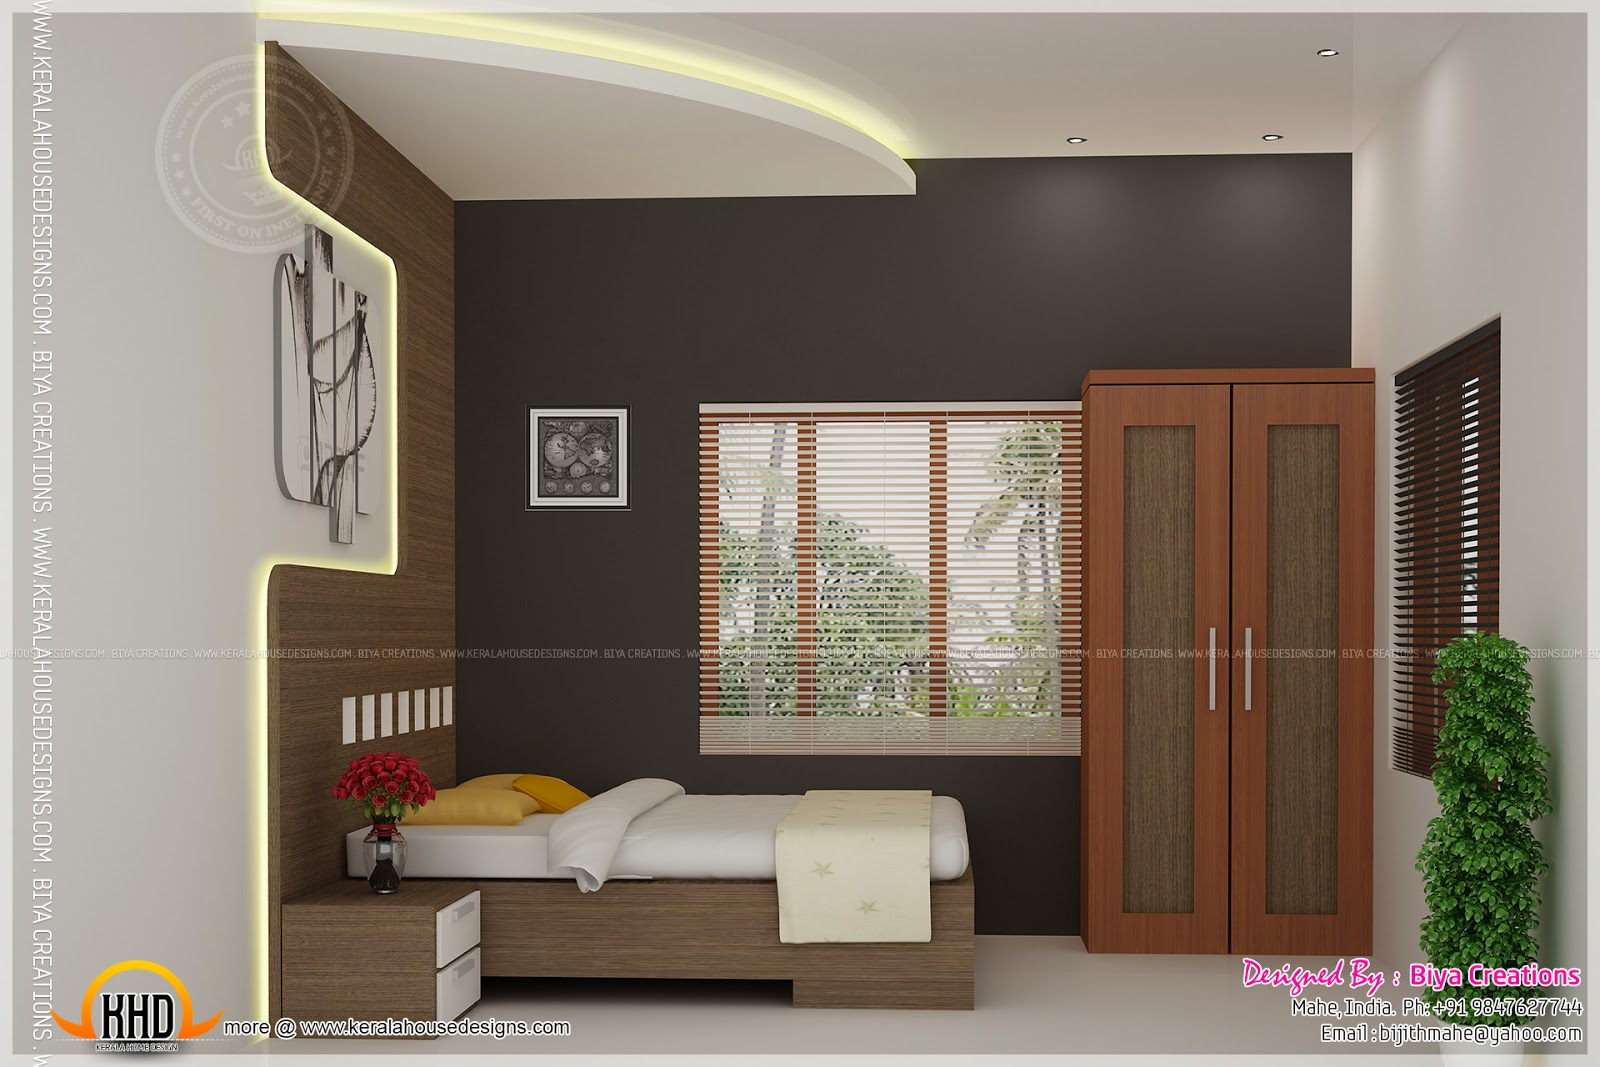 Bedroom kid bedroom and kitchen interior kerala home for Design homes interior